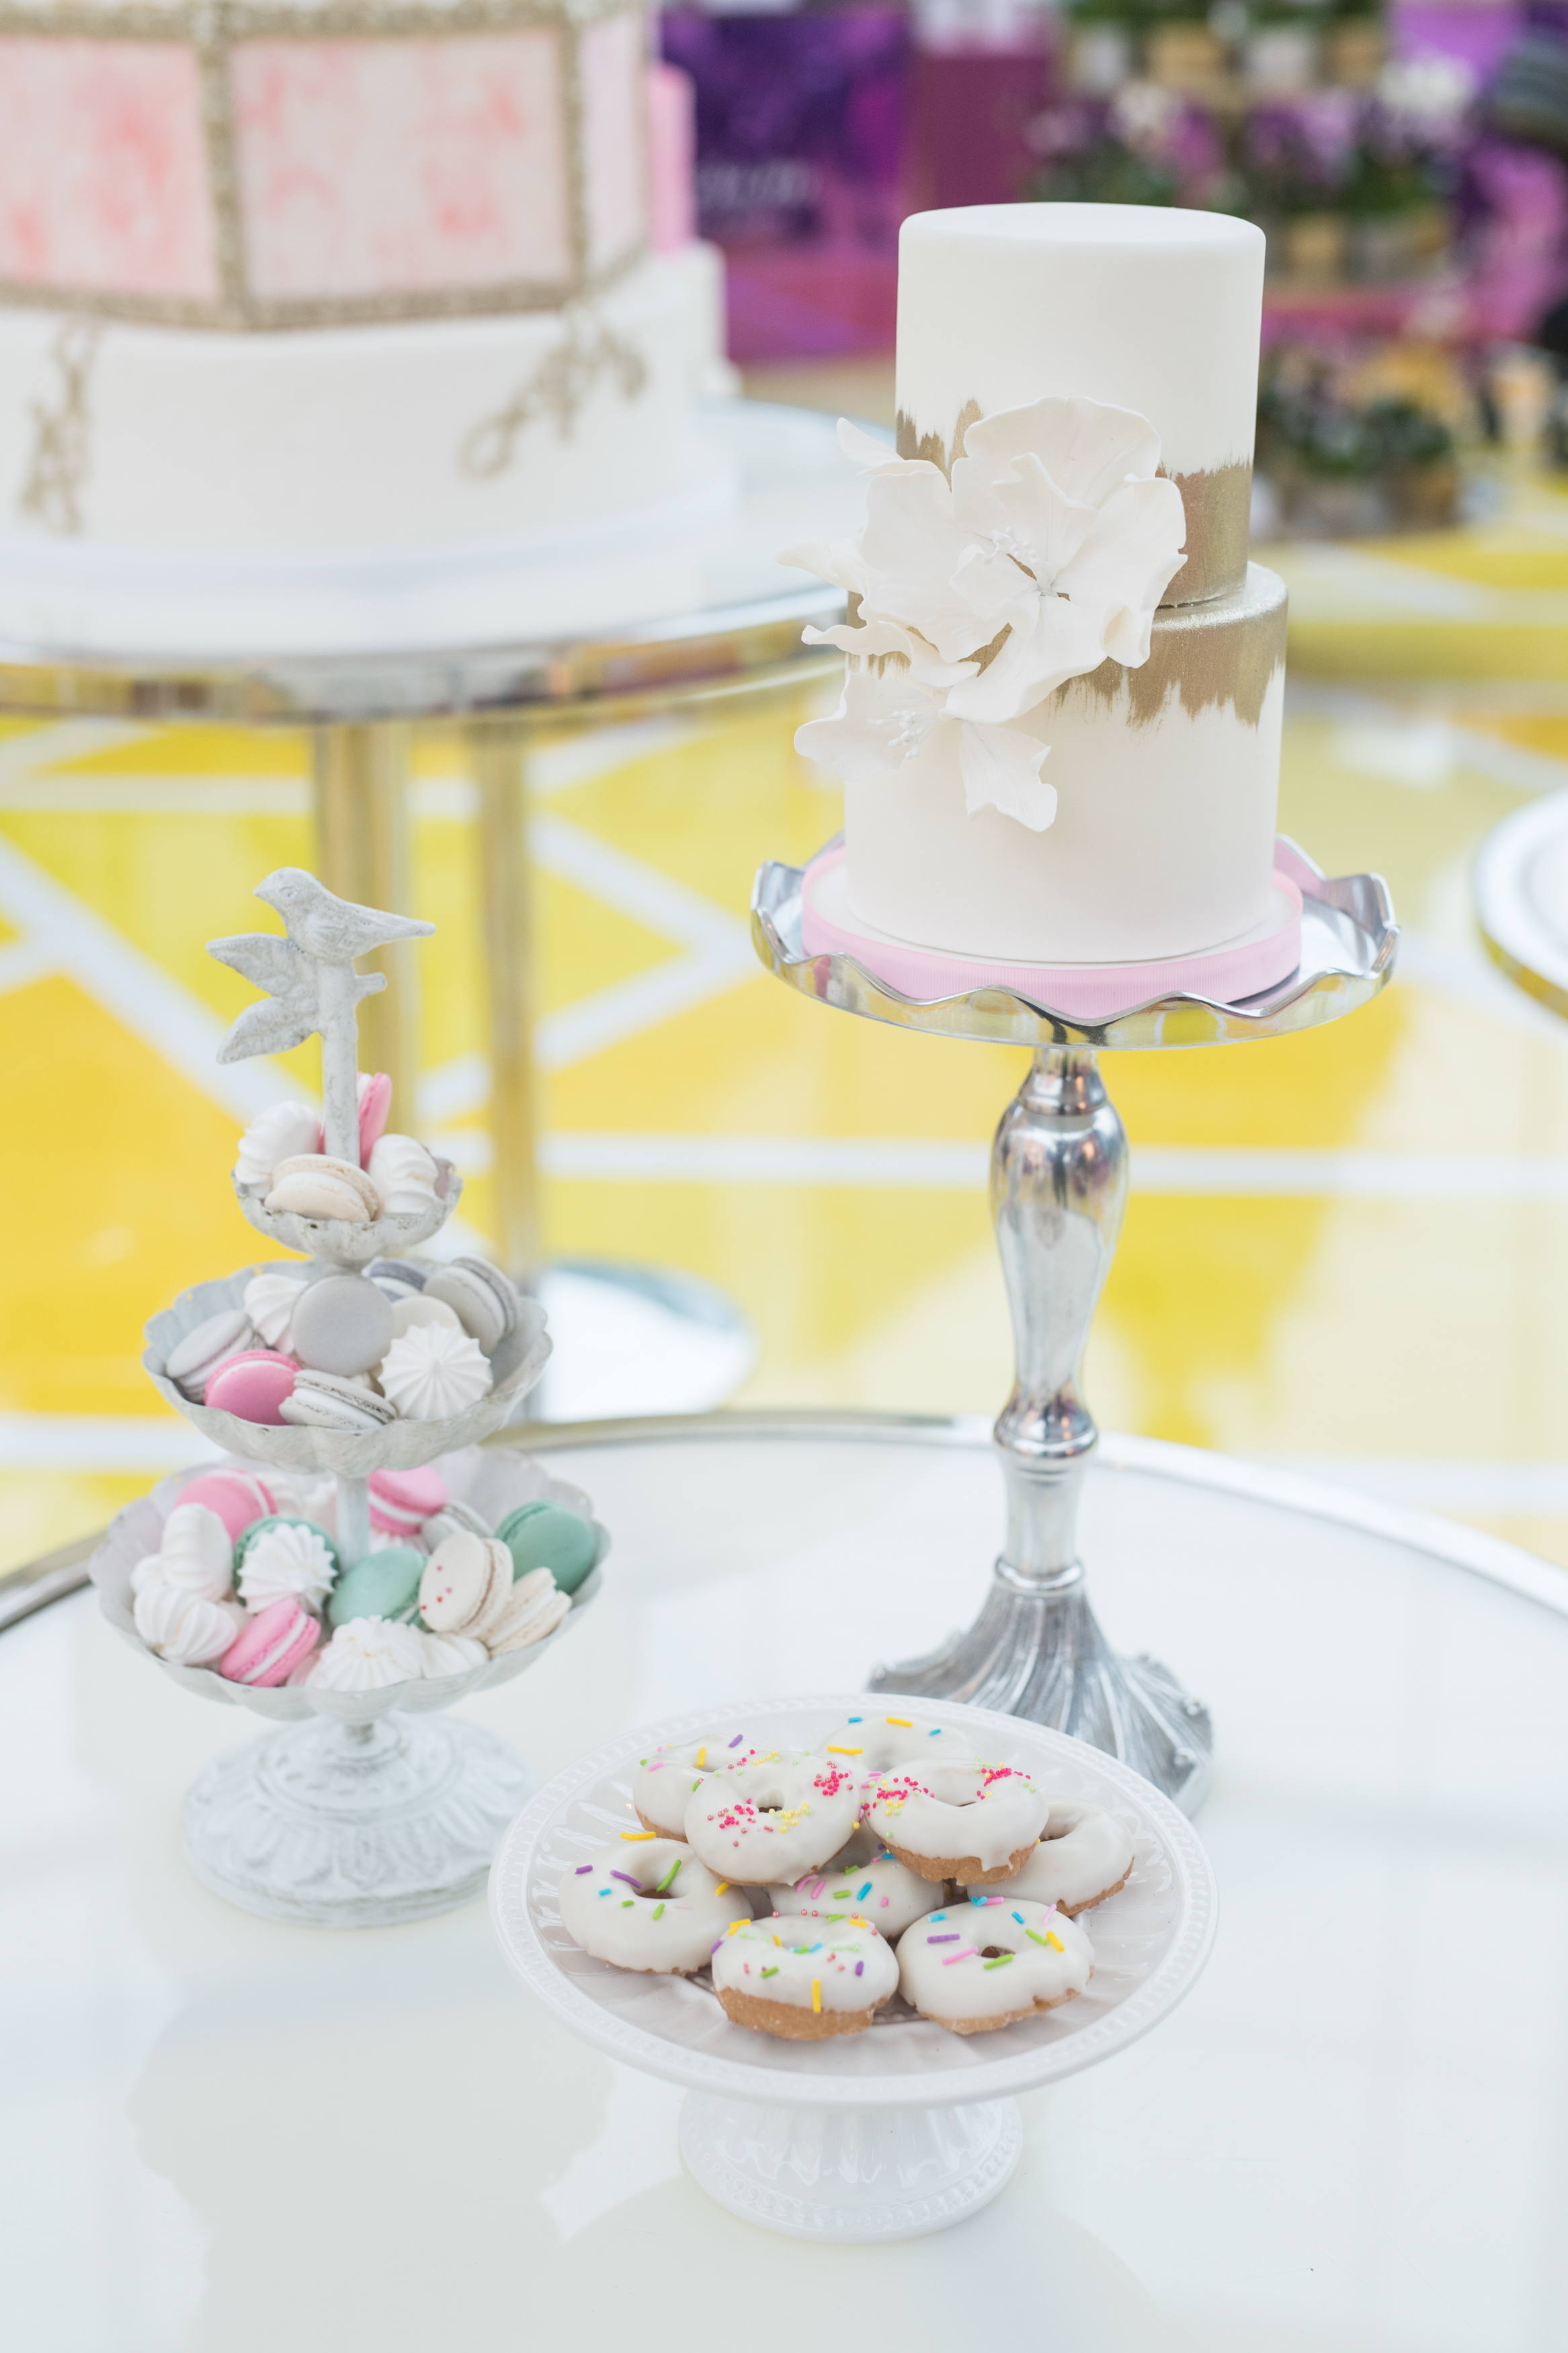 August In Bloom - Sweet table - #SQ1Bridal (Square One Shopping Centre)